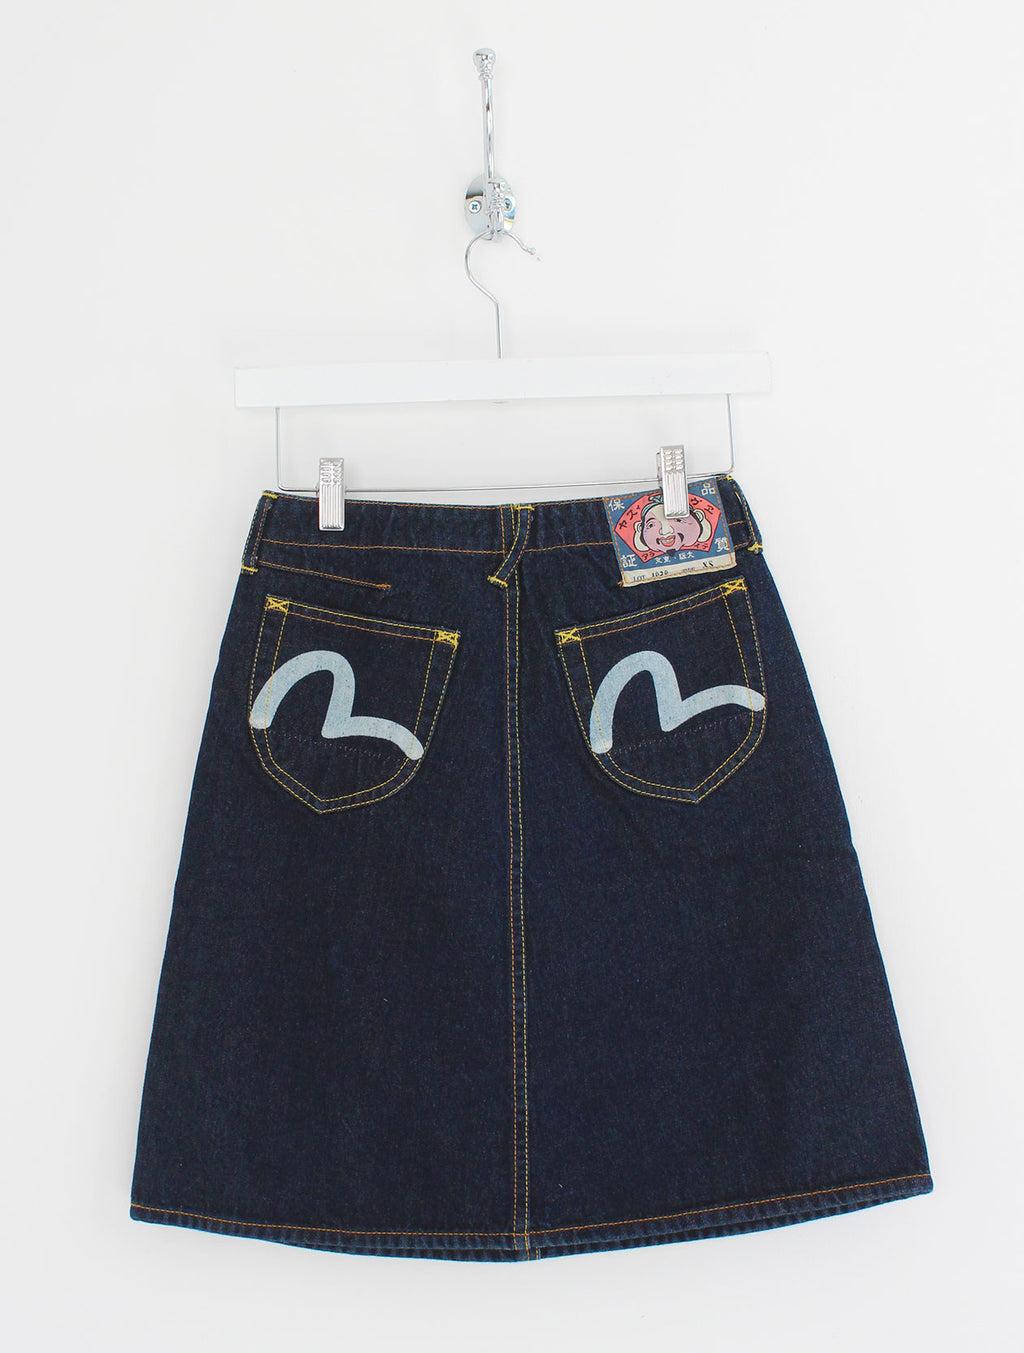 Women's Evisu Skirt (XS)